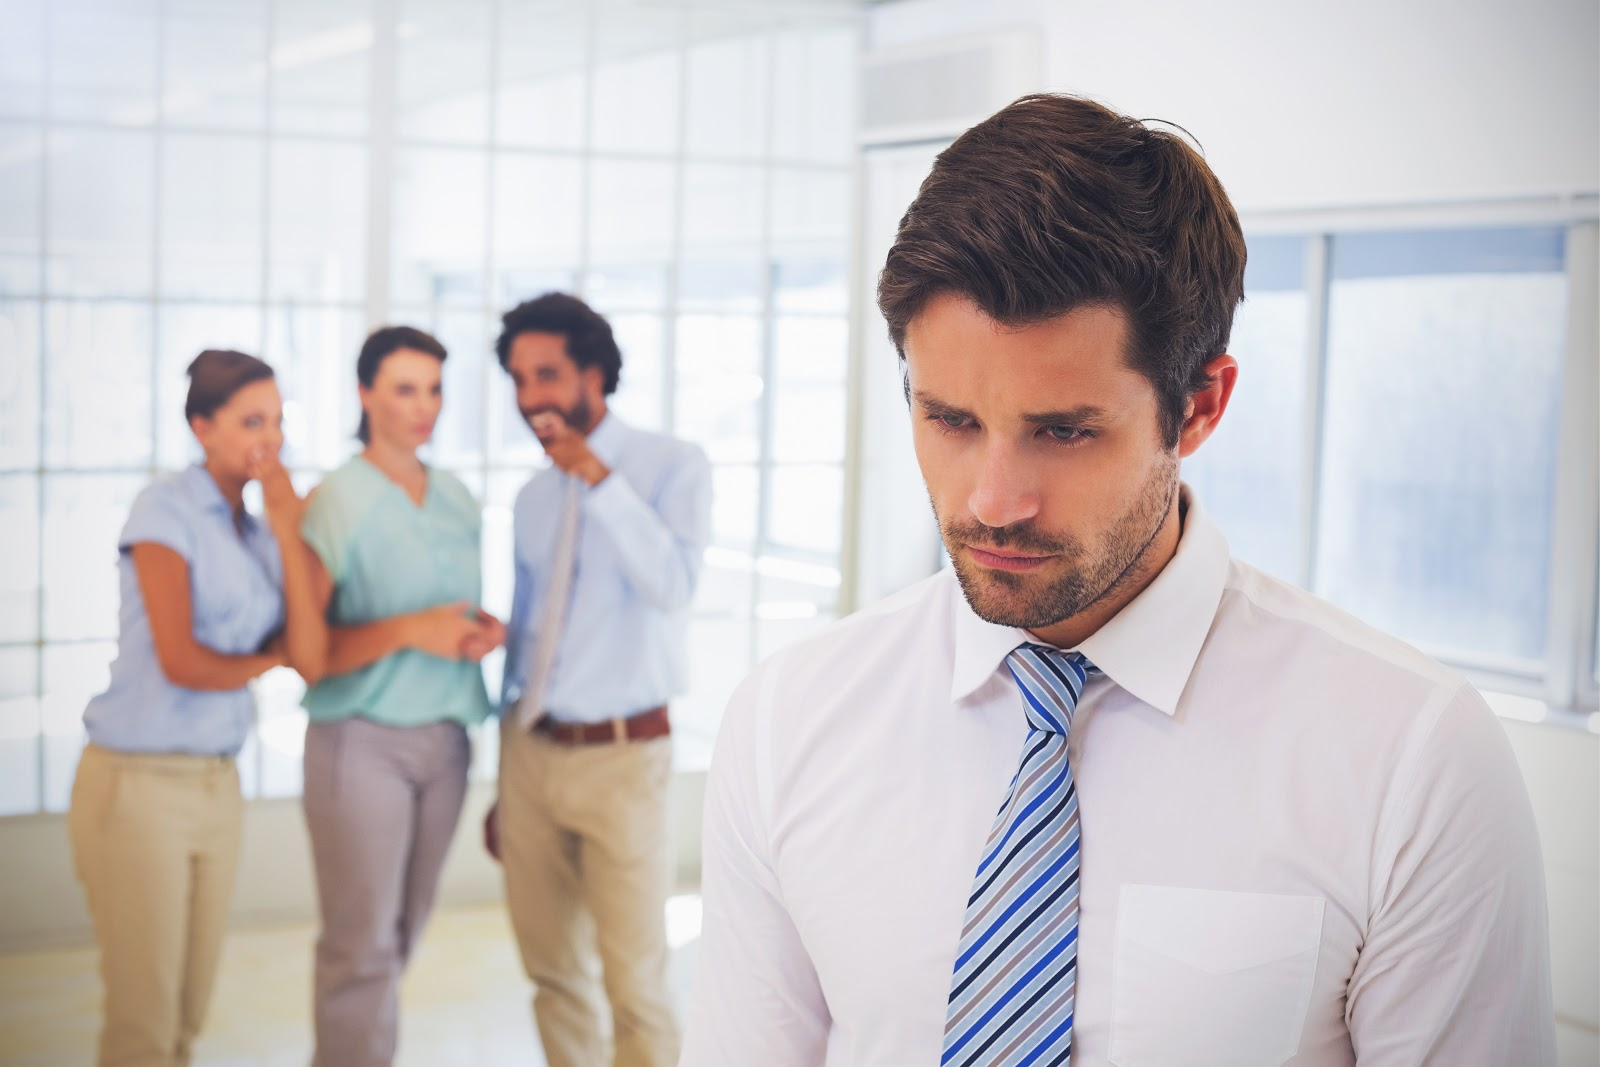 A man standing in front of coworkers whispering about him